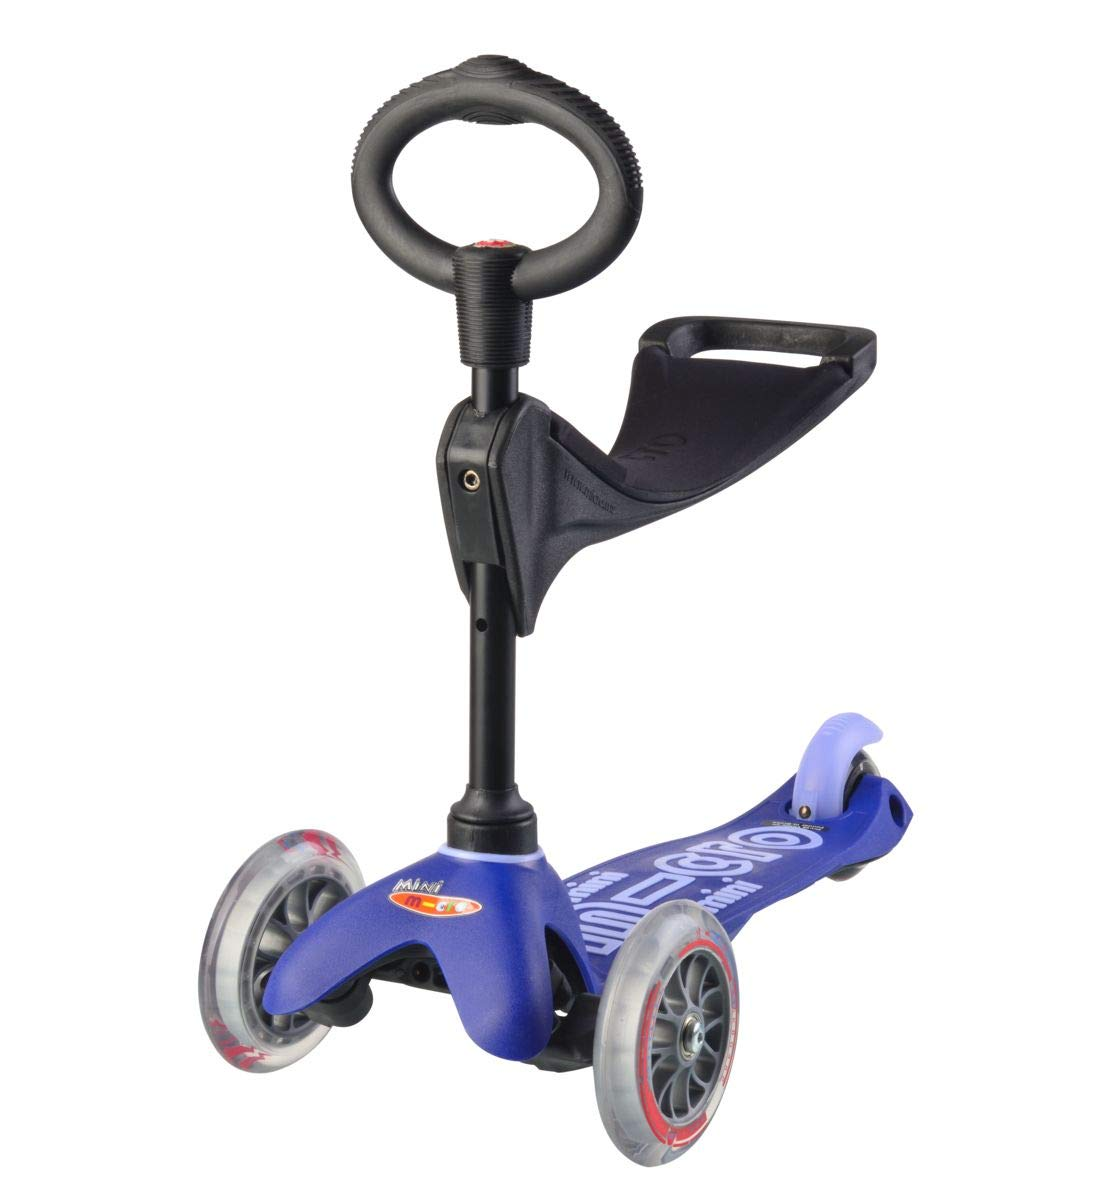 Mini 3in1 Deluxe 3-stage ride-on Micro scooter toddler toys for ages 12 months to 5 years - Blue by Micro Kickboard